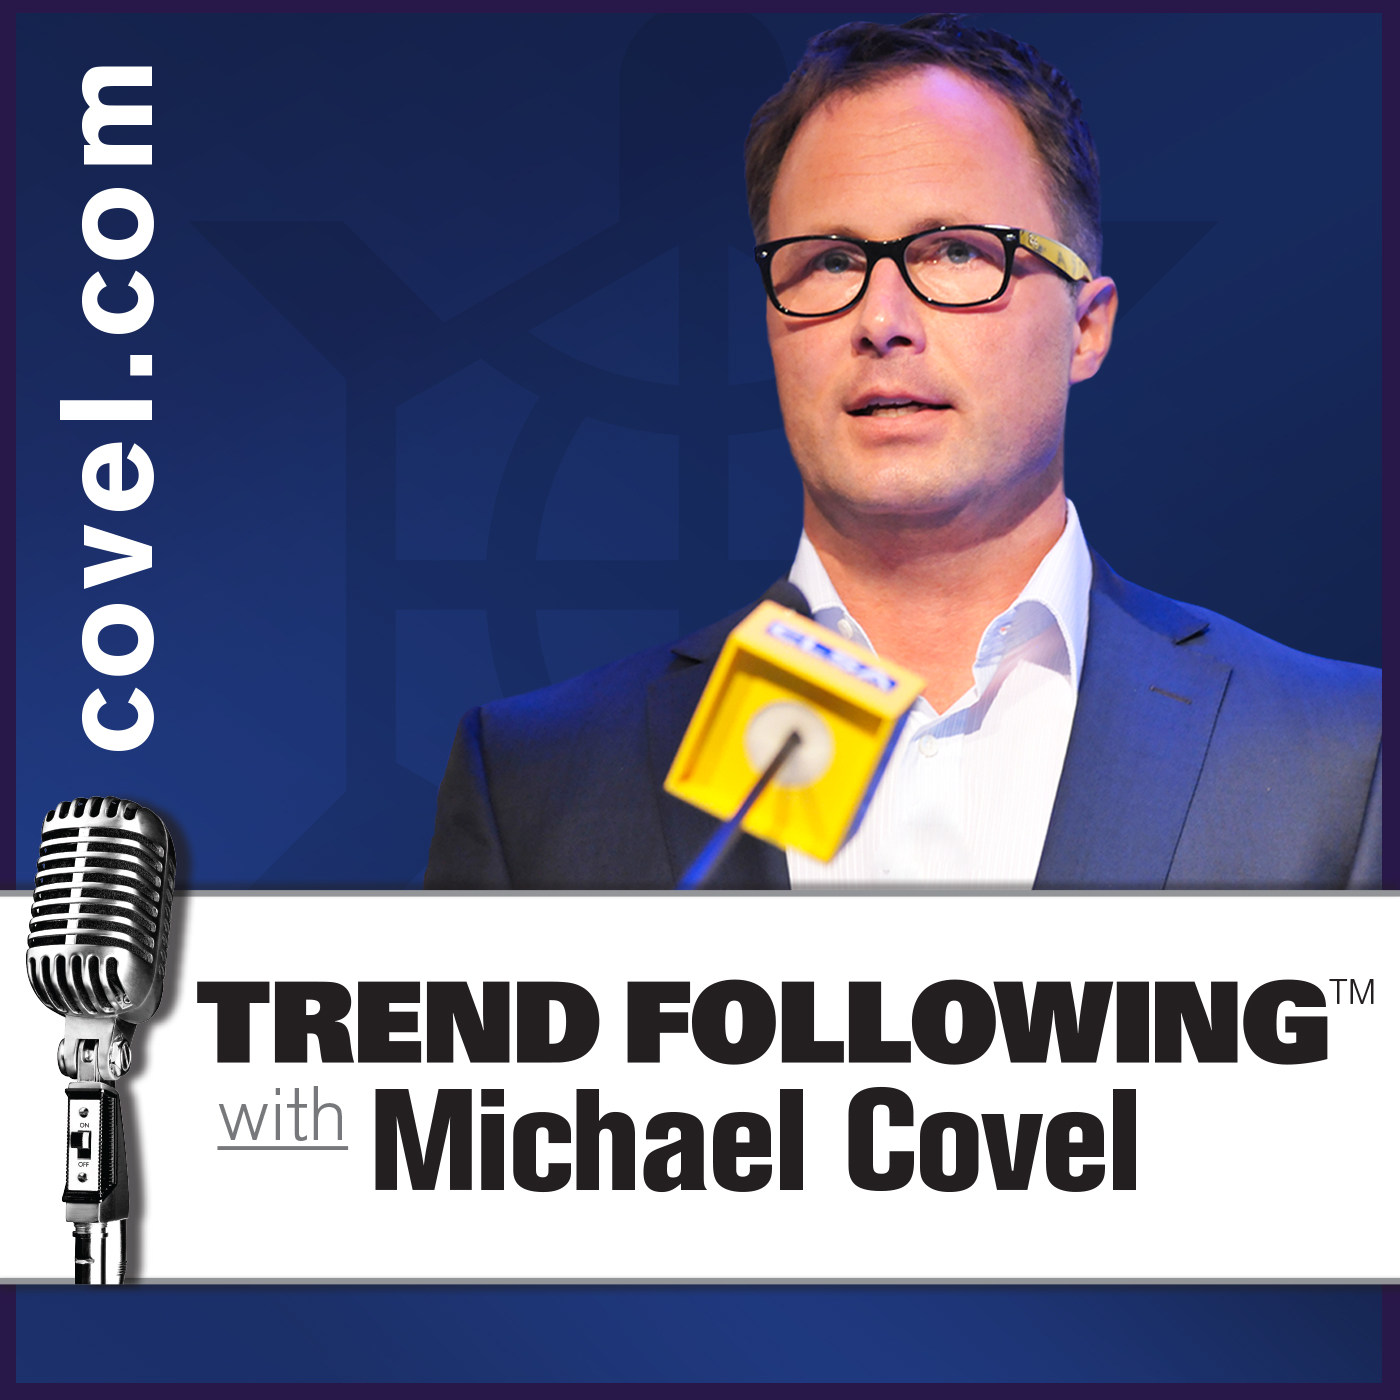 Ep. 521: John Jantsch Interview with Michael Covel on Trend Following Radio